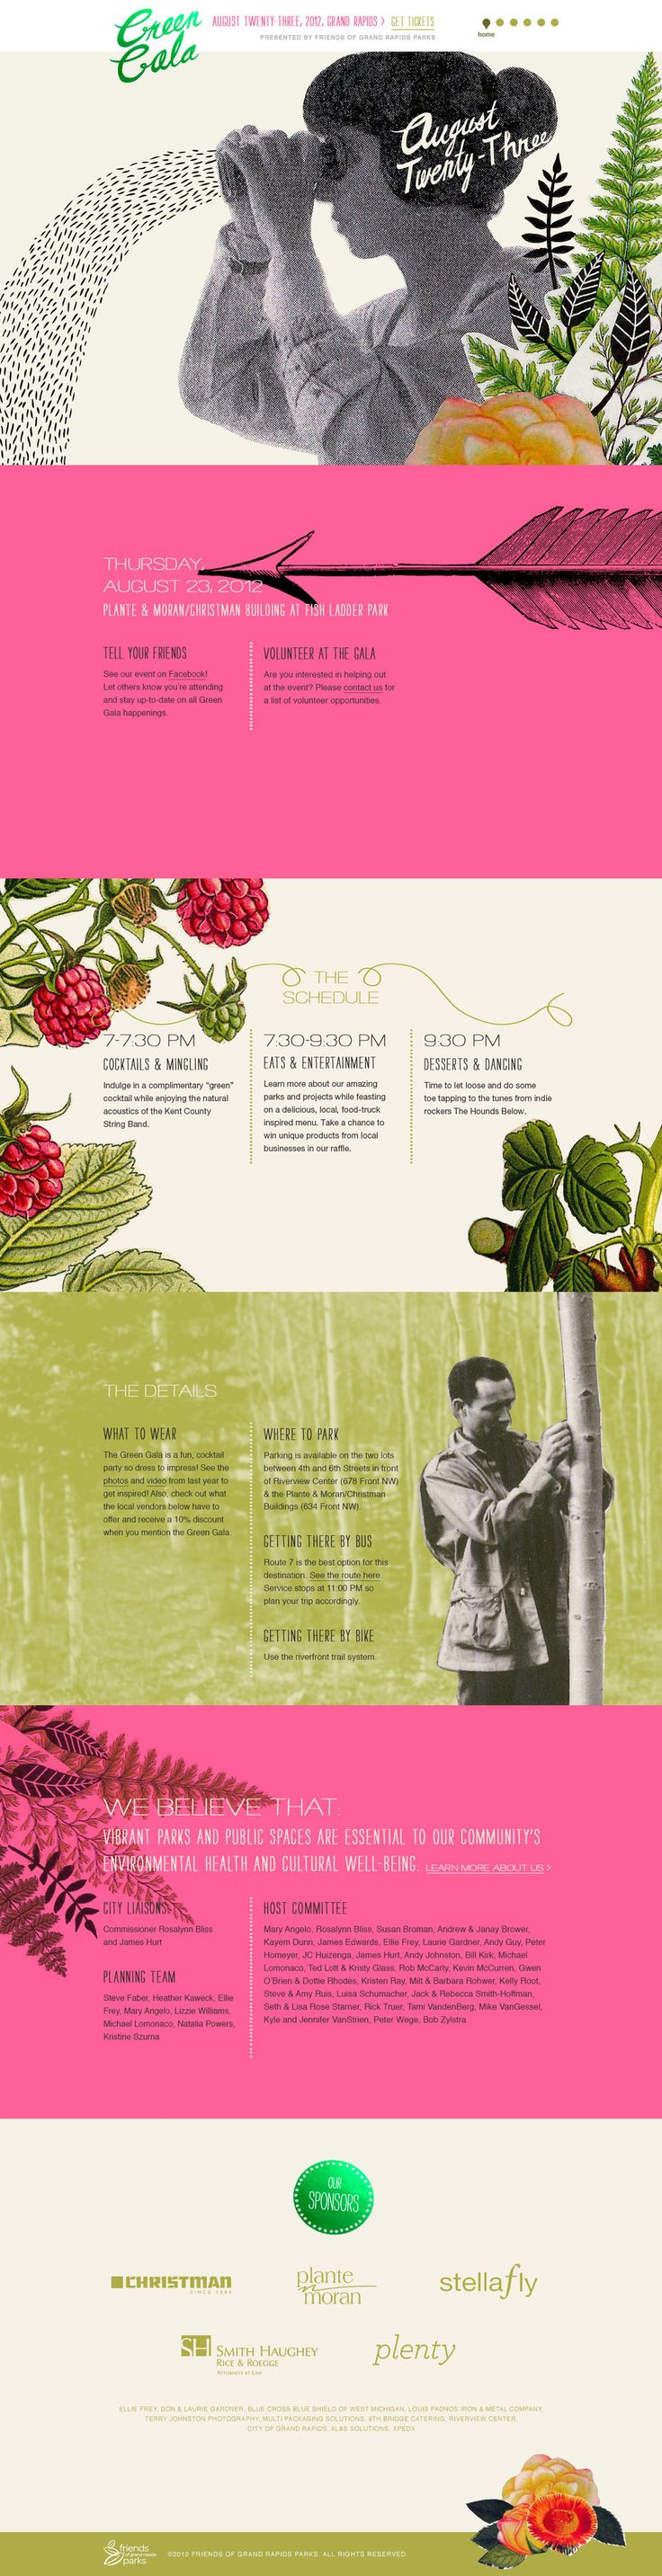 Unique Web Design, Green Cala #WebDesign #Design